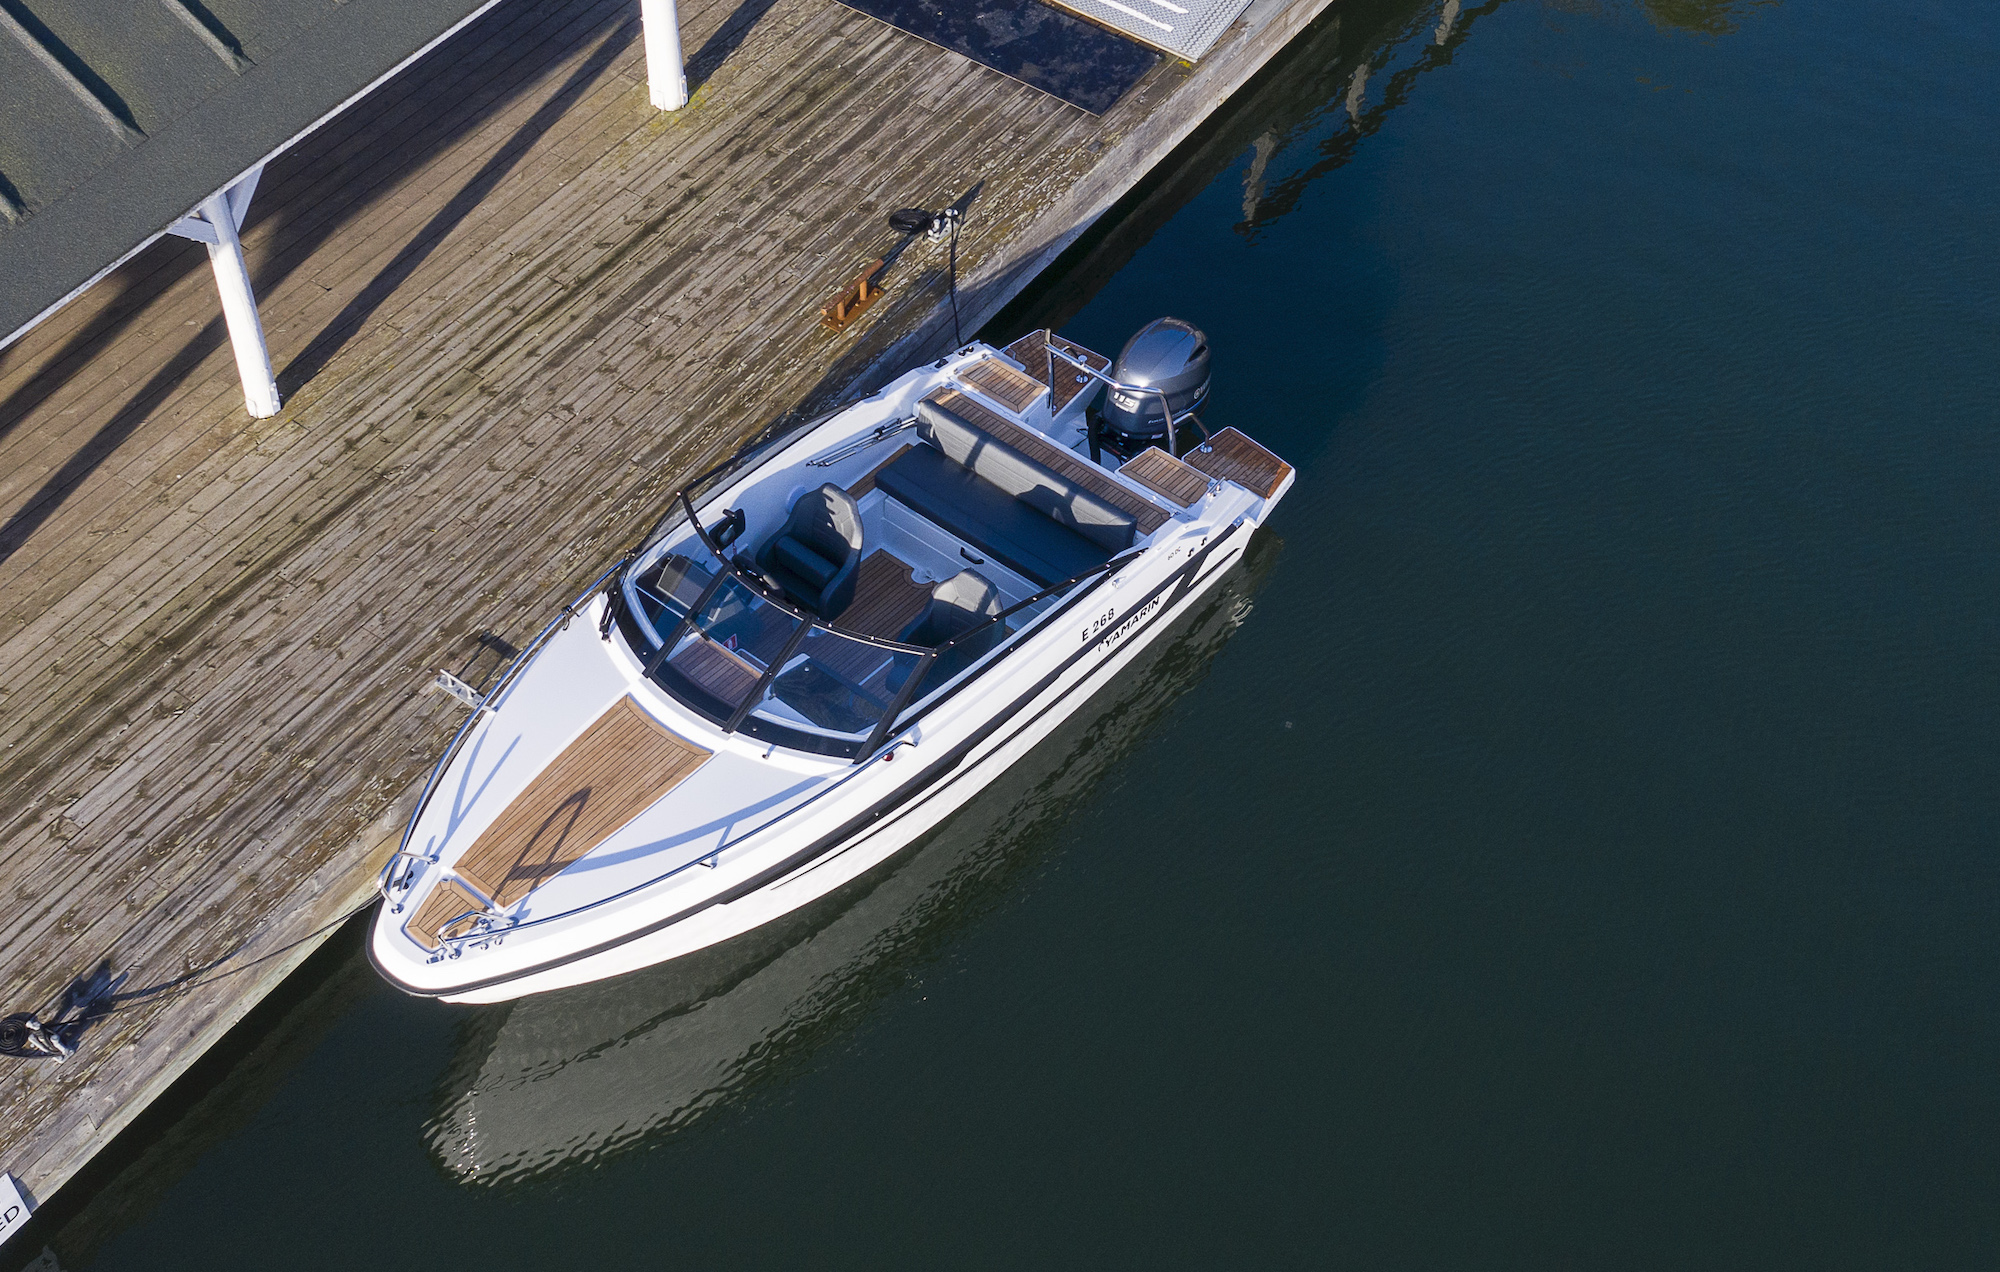 Yamarin 60 DC will be displayed at the Tallinn Boat Show 2020